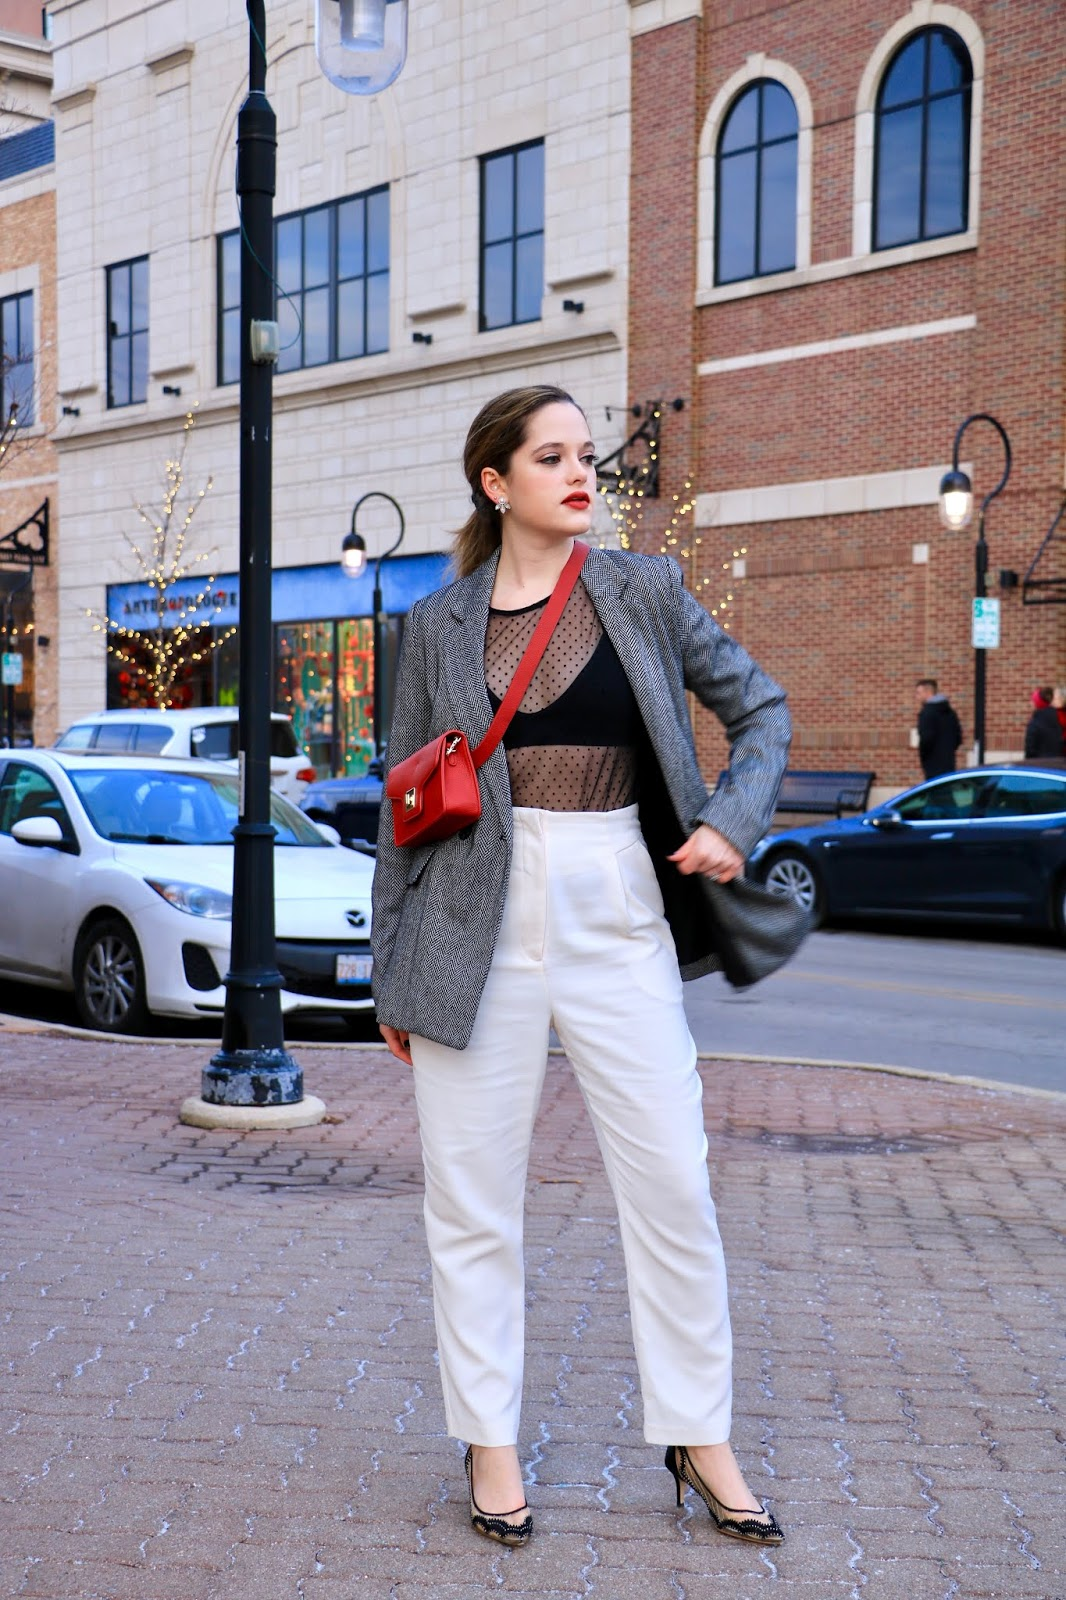 Nyc fashion blogger Kathleen Harper wearing a sheer top outfit.